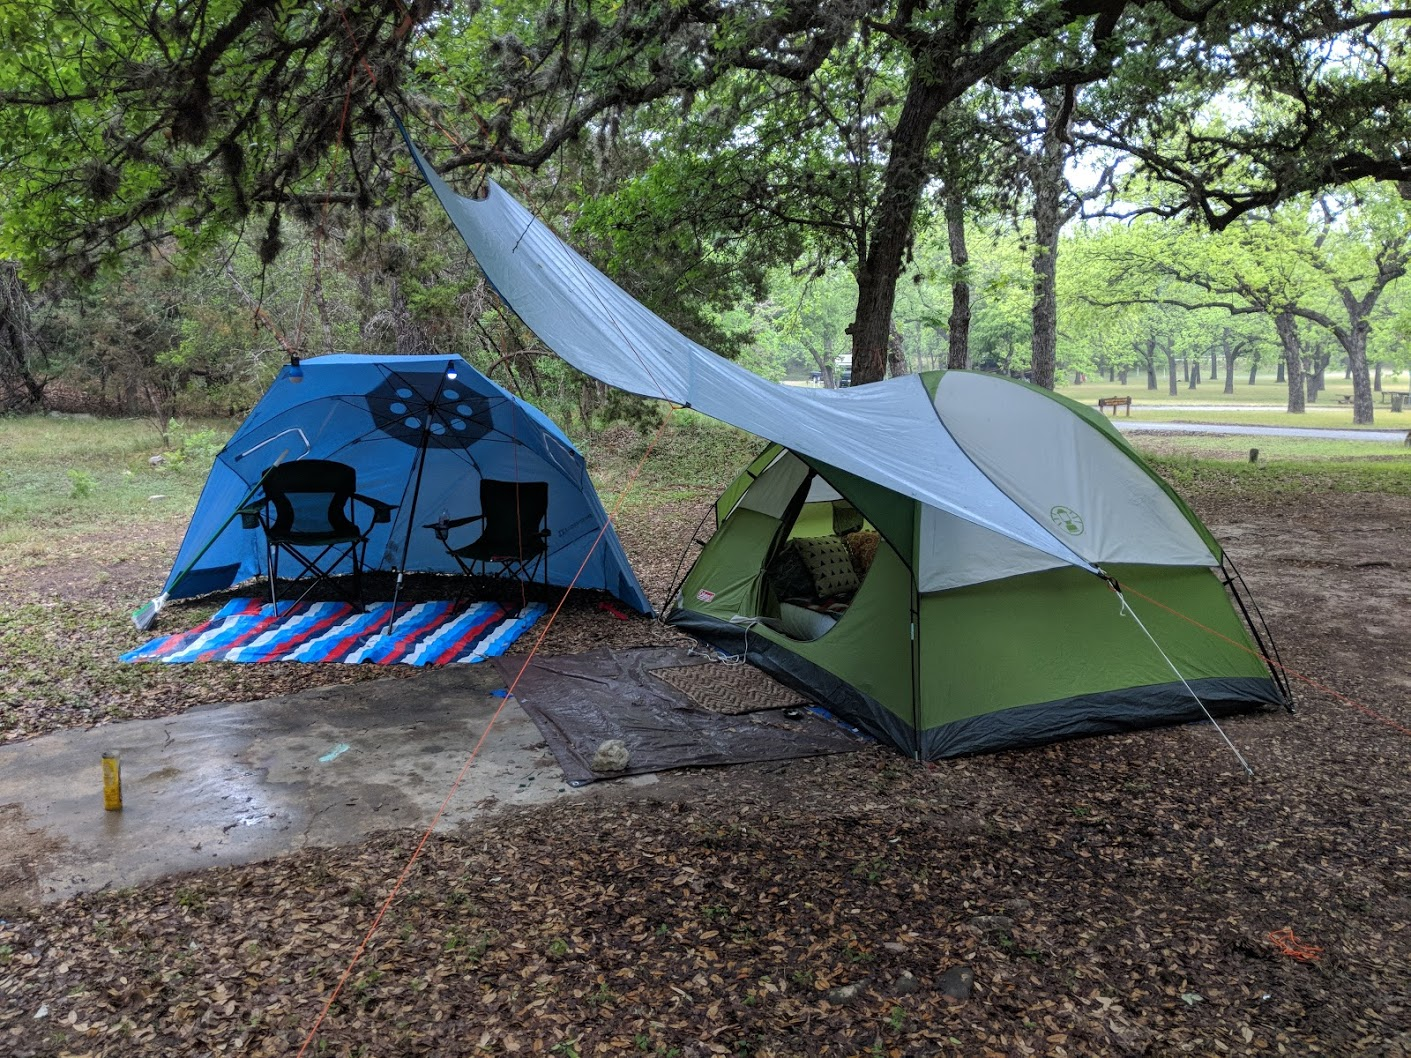 Here's our basic camping setup when we're prepared for rain. It is a good thing we ready, too, as it would have been pretty uncomfortable without it.